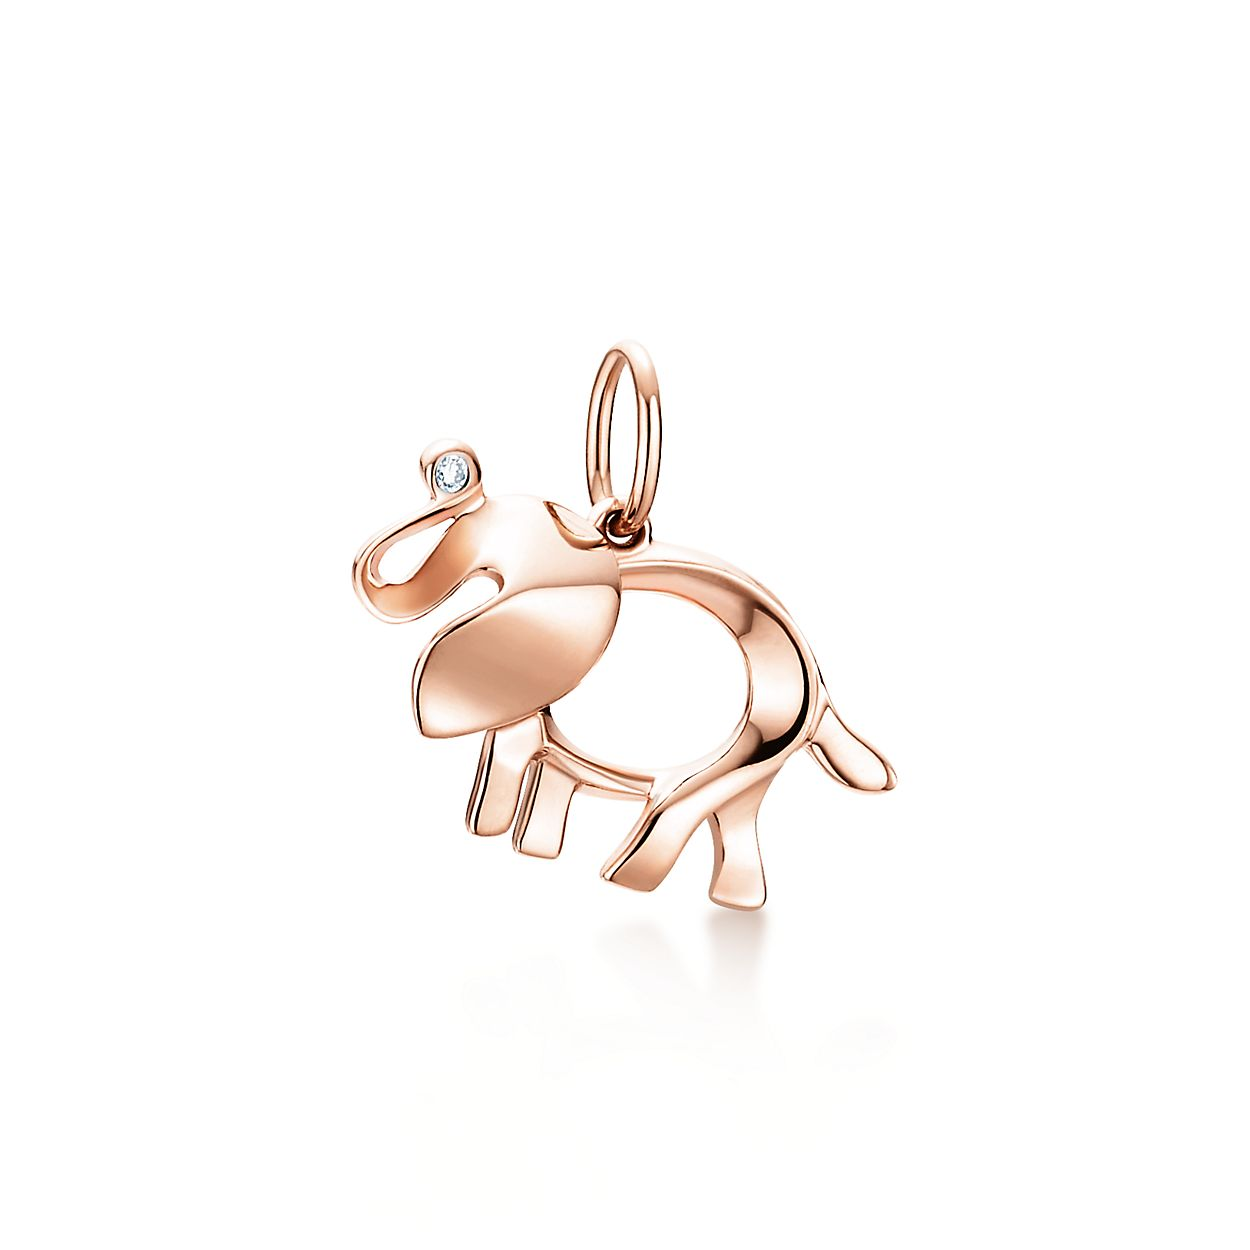 Tiffany Save the Wild elephant charm in rose gold with a diamond, extra small Tiffany & Co.